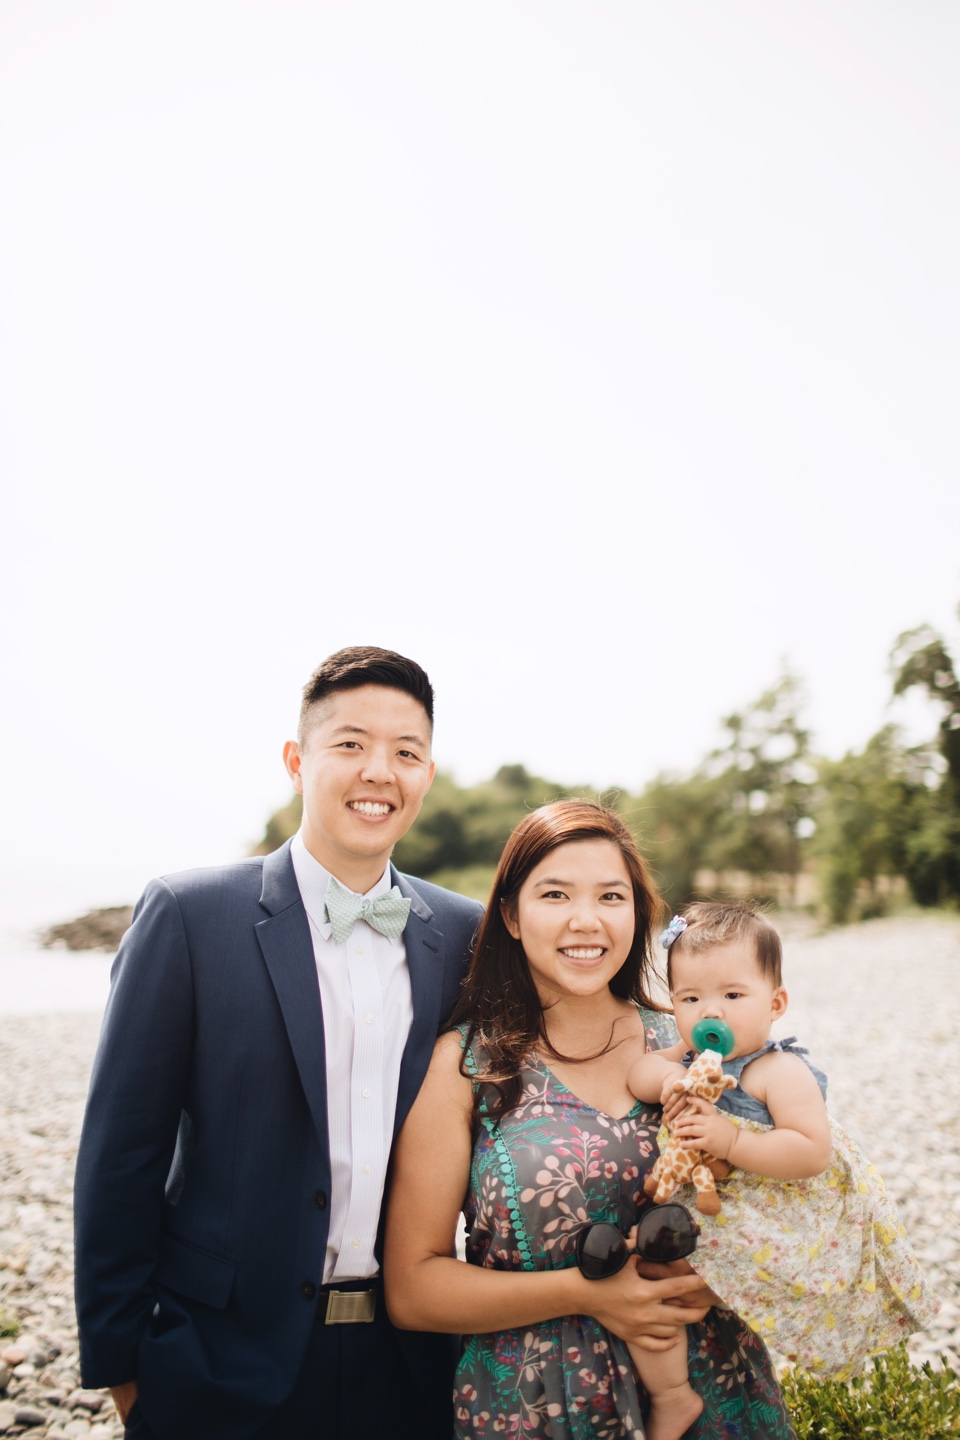 Dr. Hubert J. Park, a pediatric dentist in the greater Boston area, poses for a photo with his wife, Amy, and daughter, Alina.